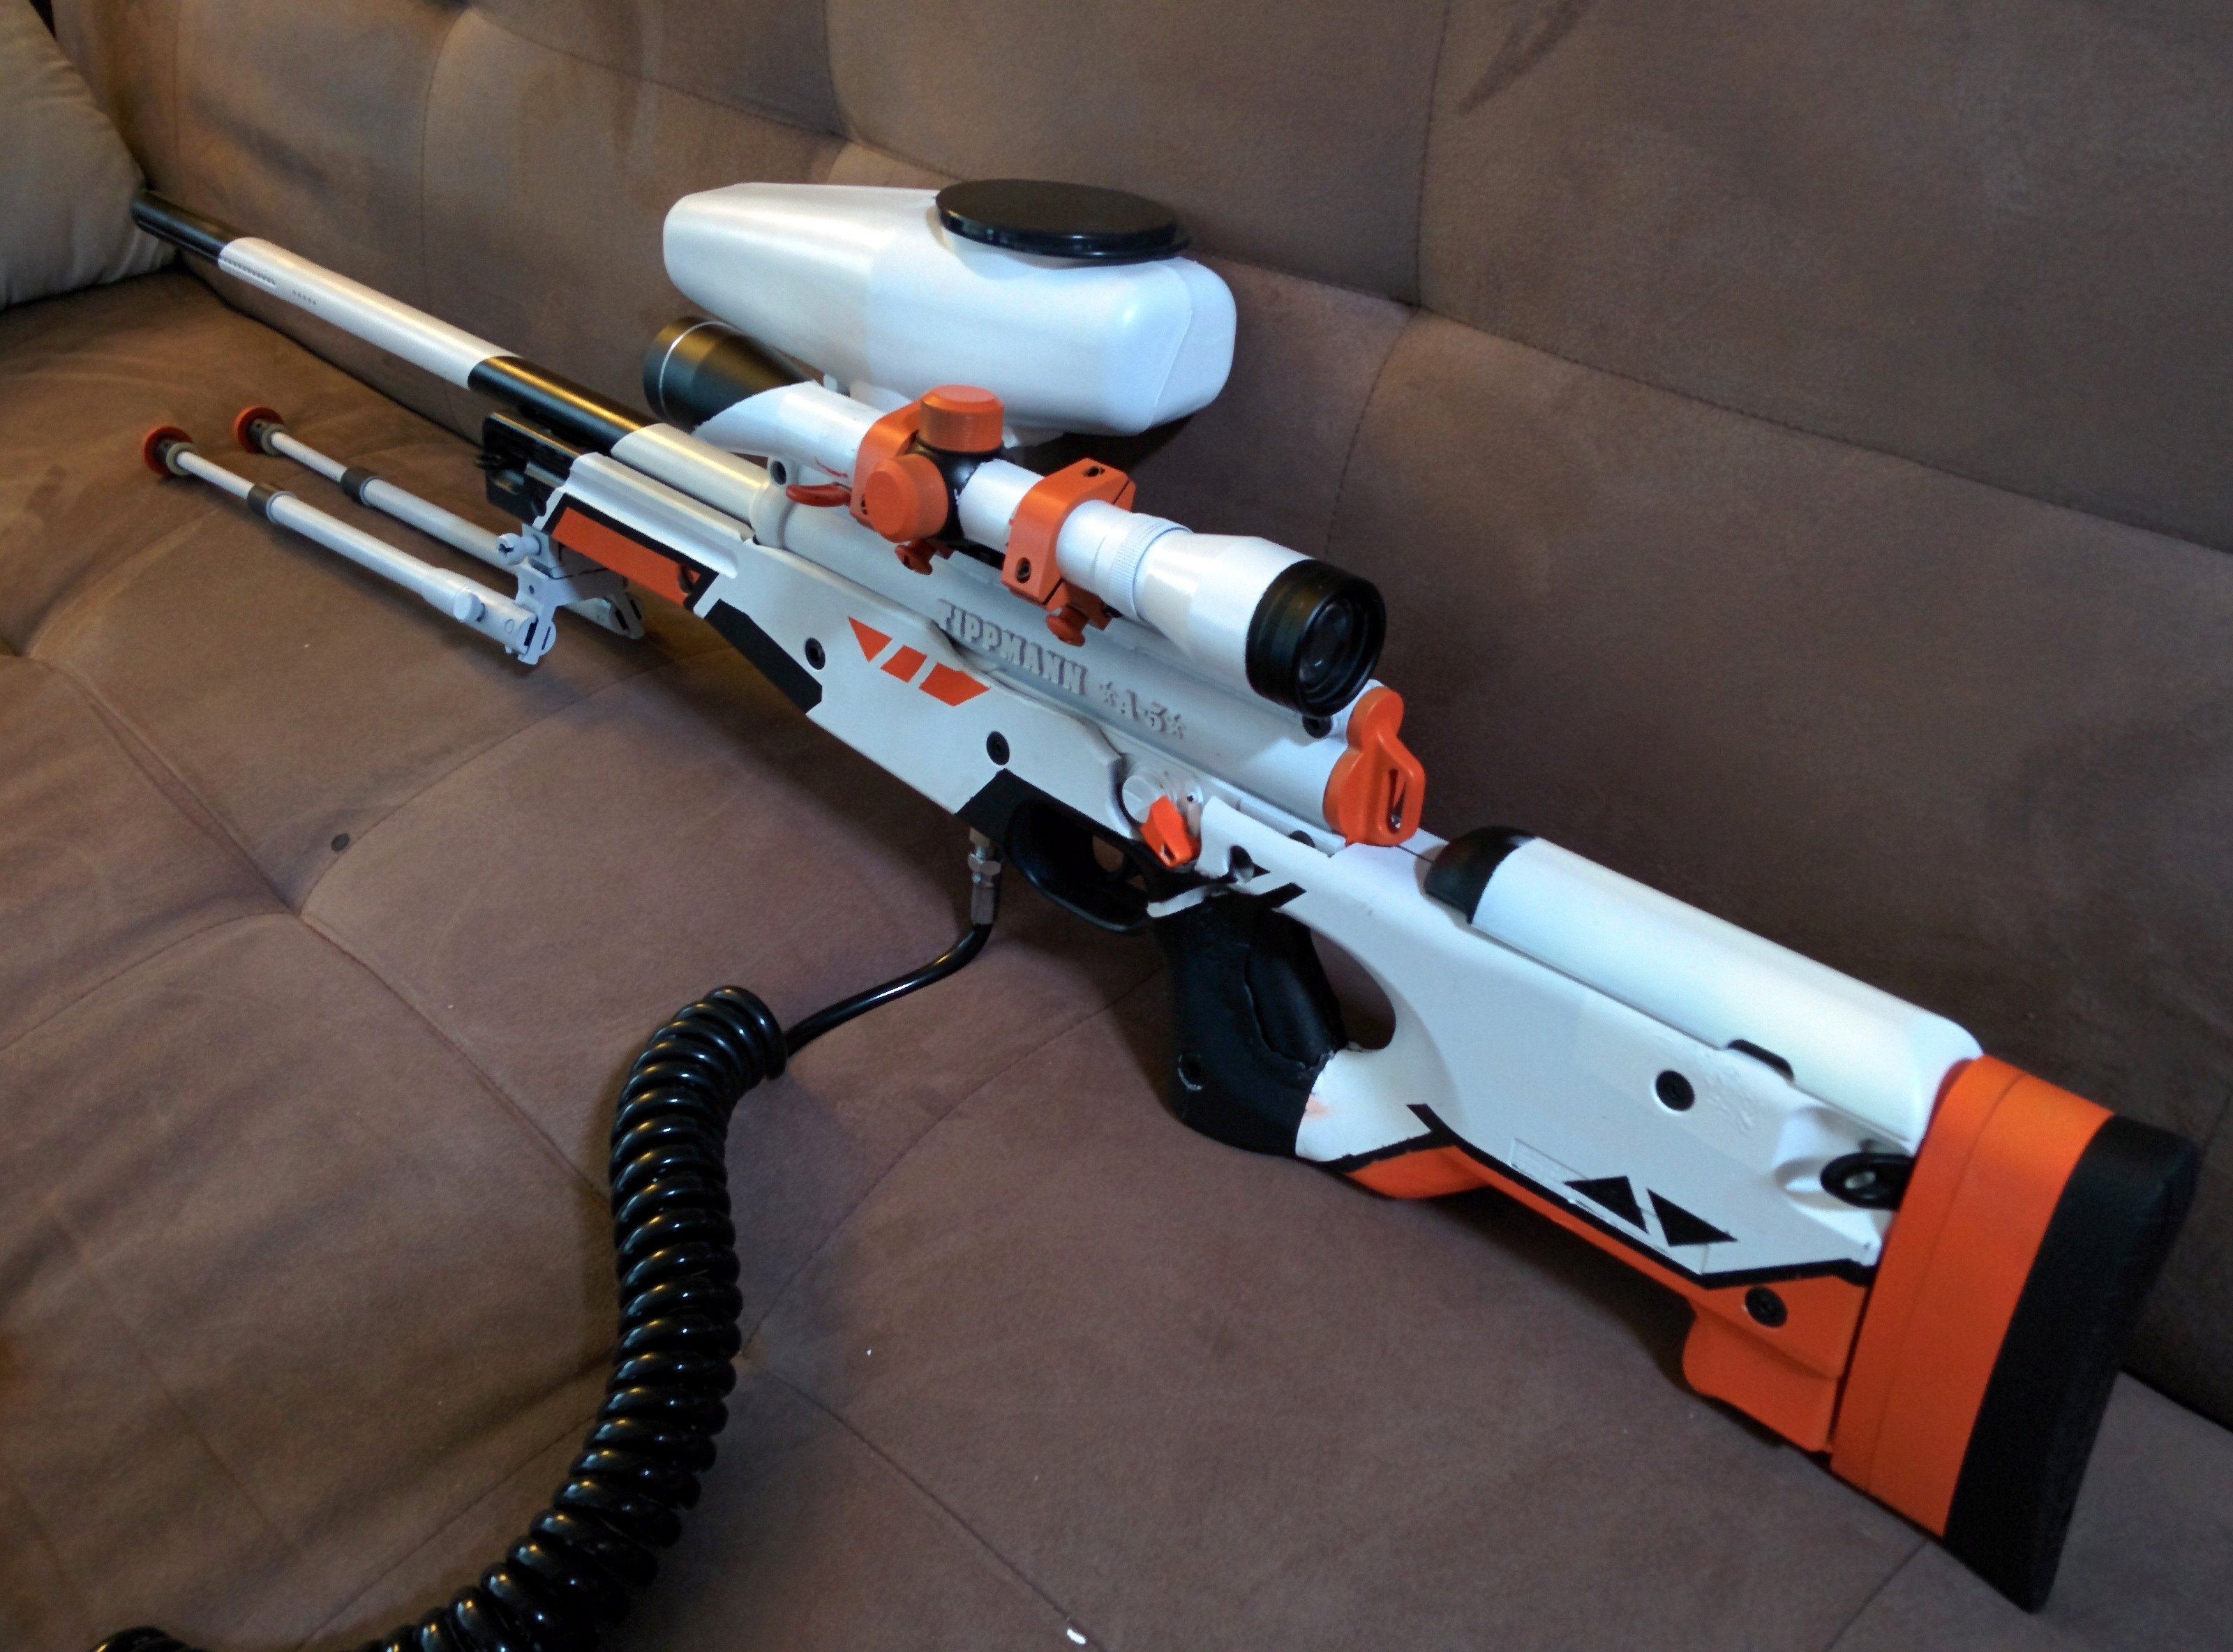 Counter-Strike Sniper Rifle Paintball Gun